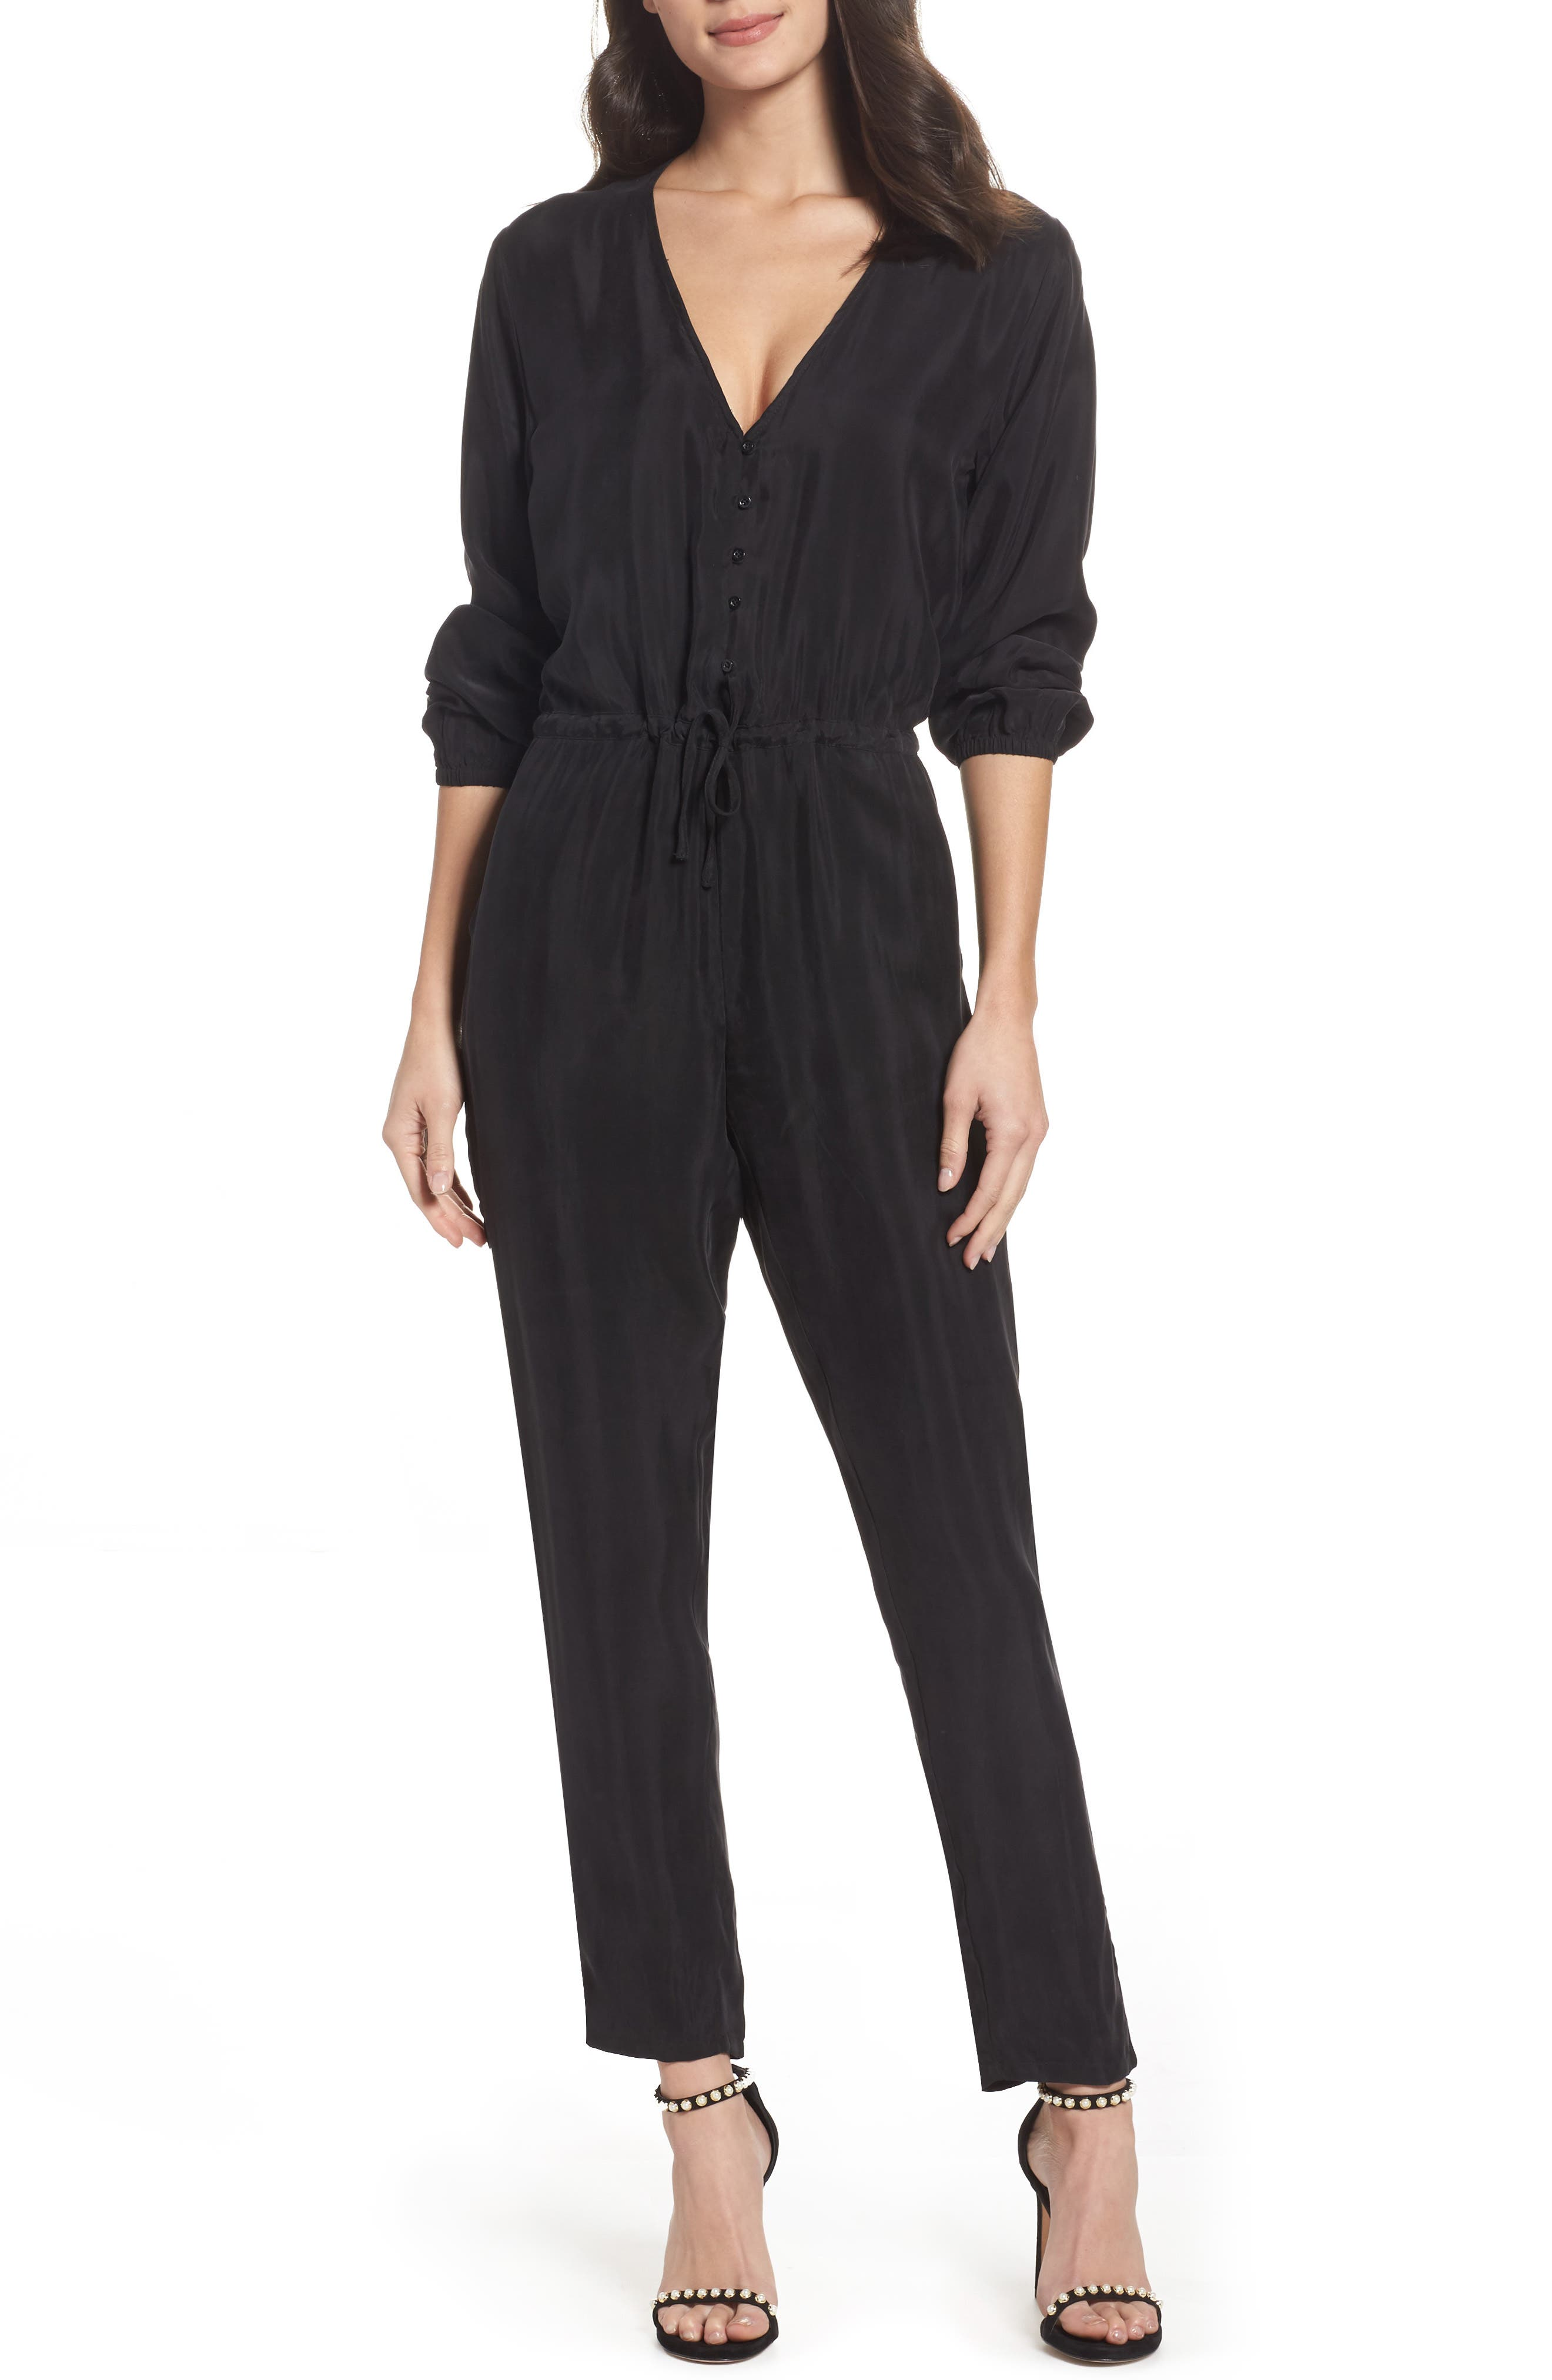 Elizabeth Jumpsuit,                             Main thumbnail 1, color,                             001